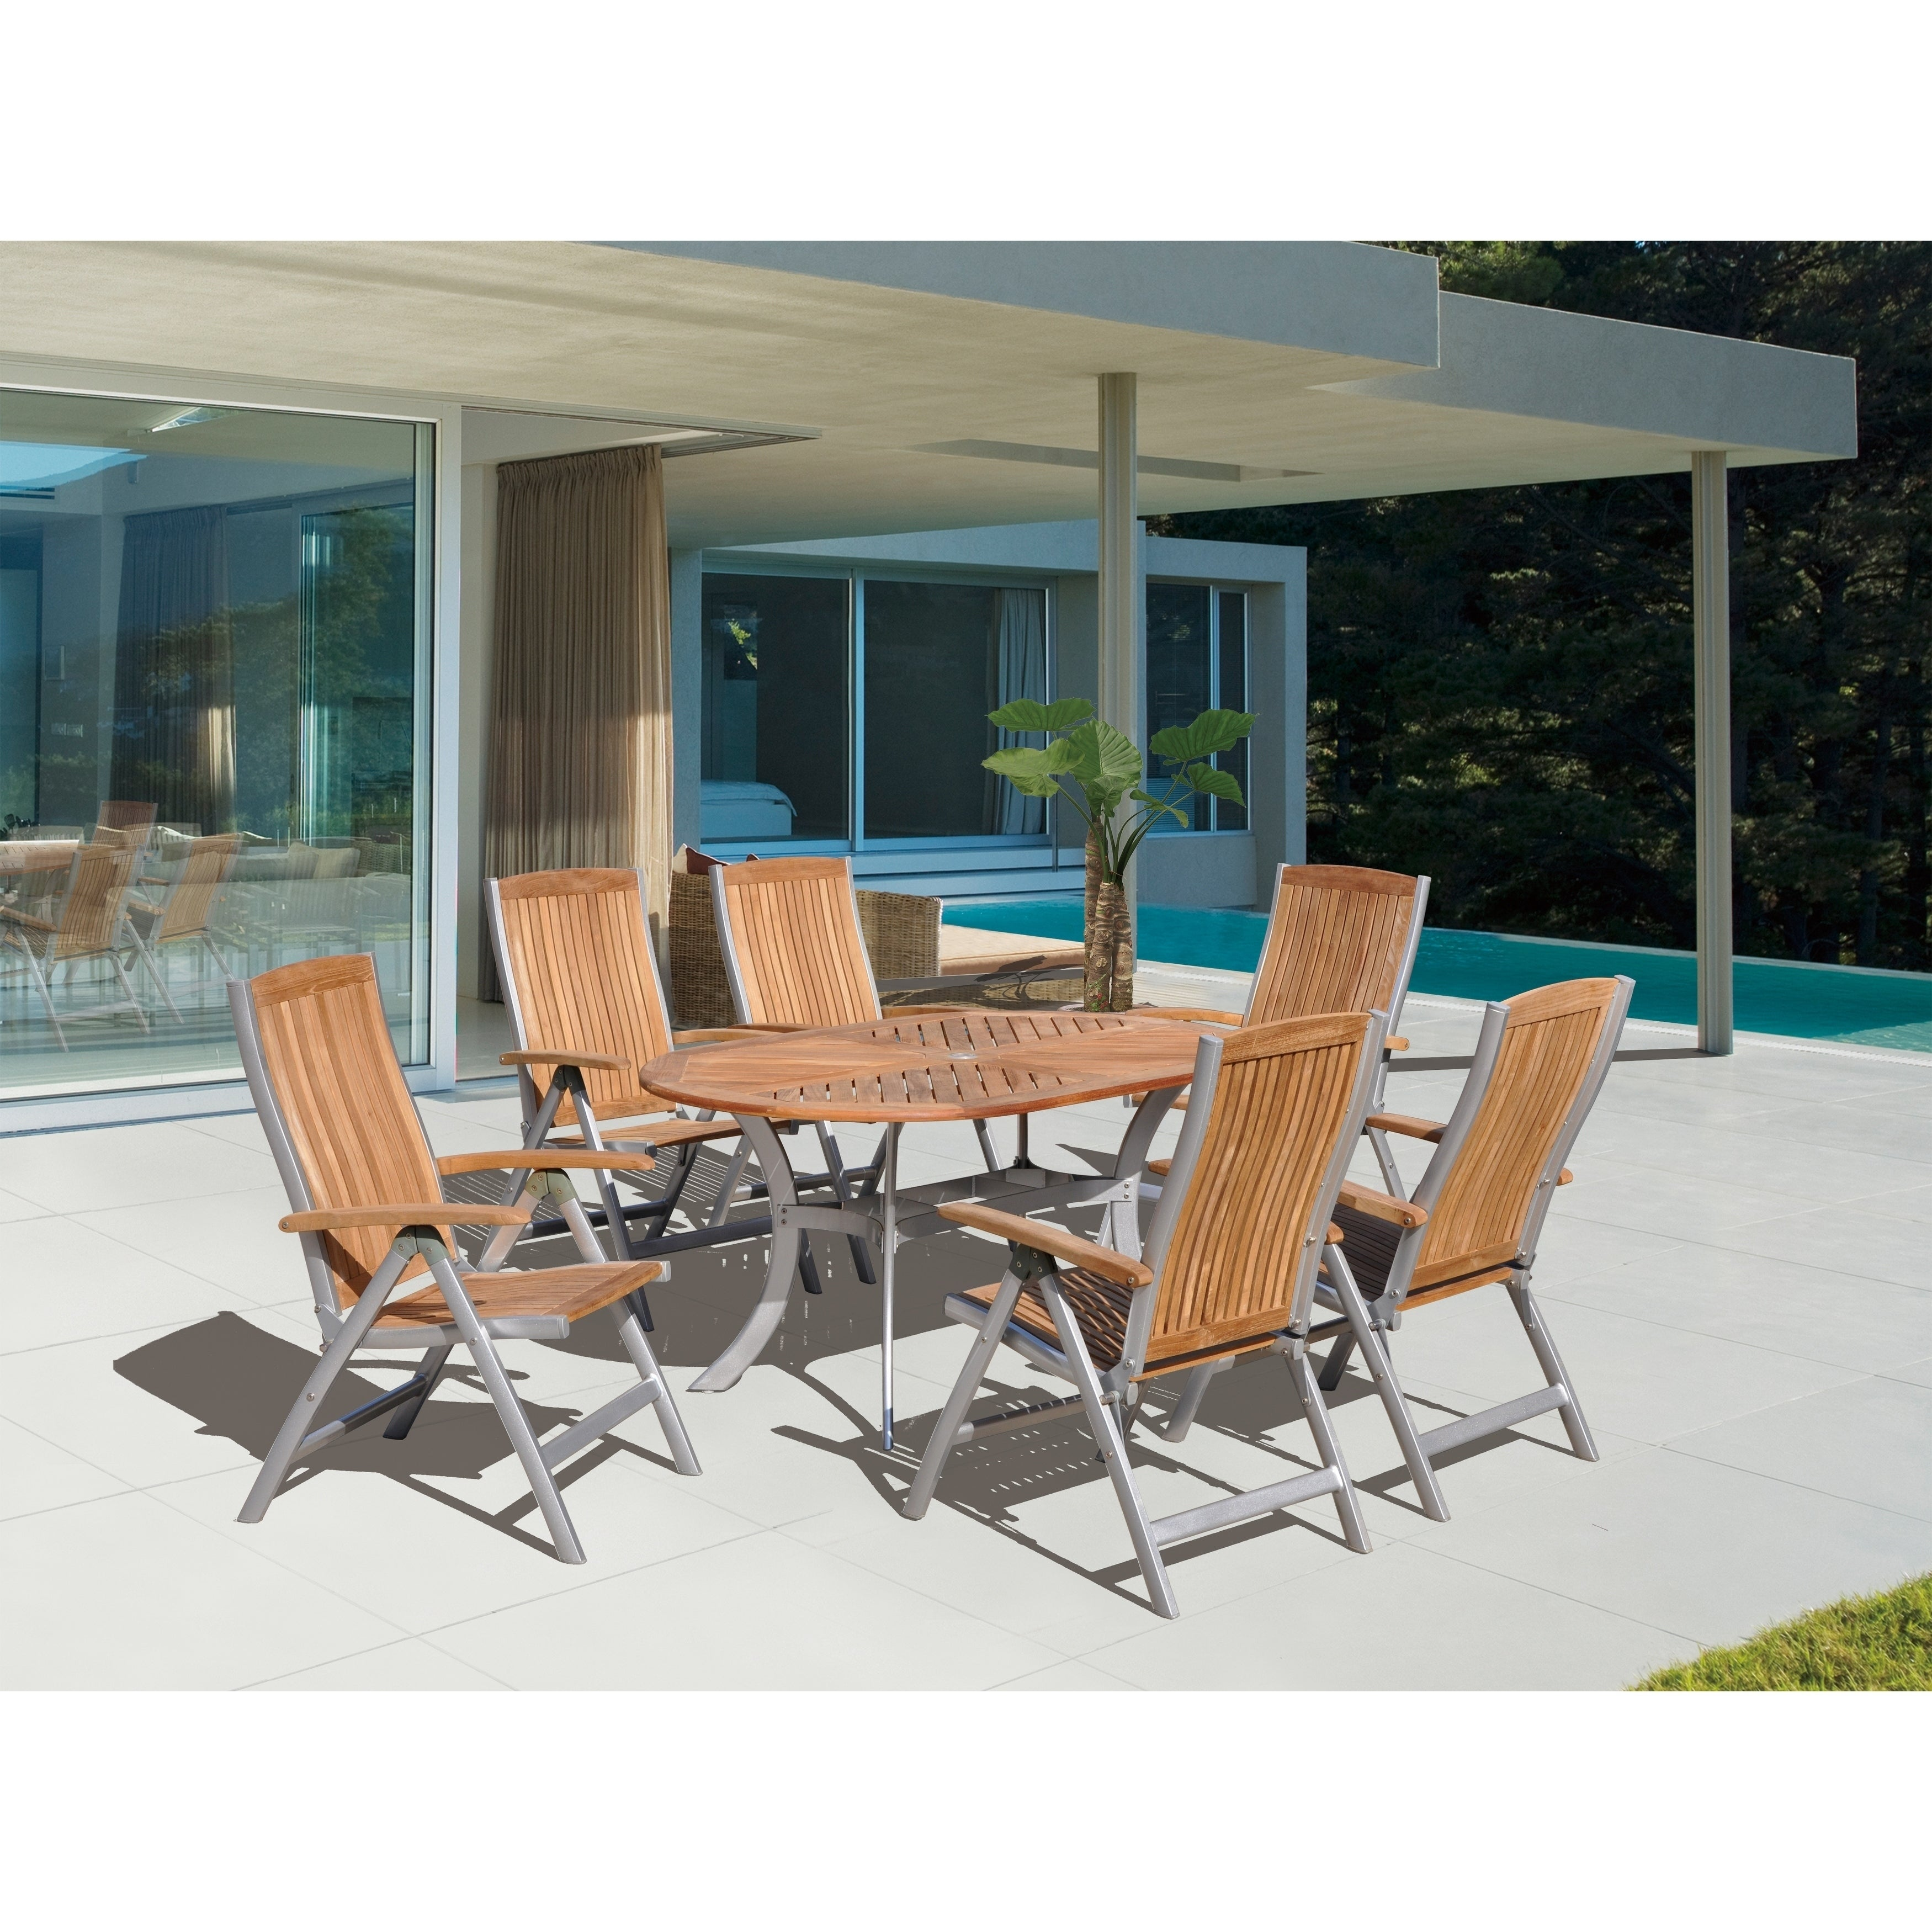 Details about havenside home goodwin natural finish teak and aluminum outdoor chair